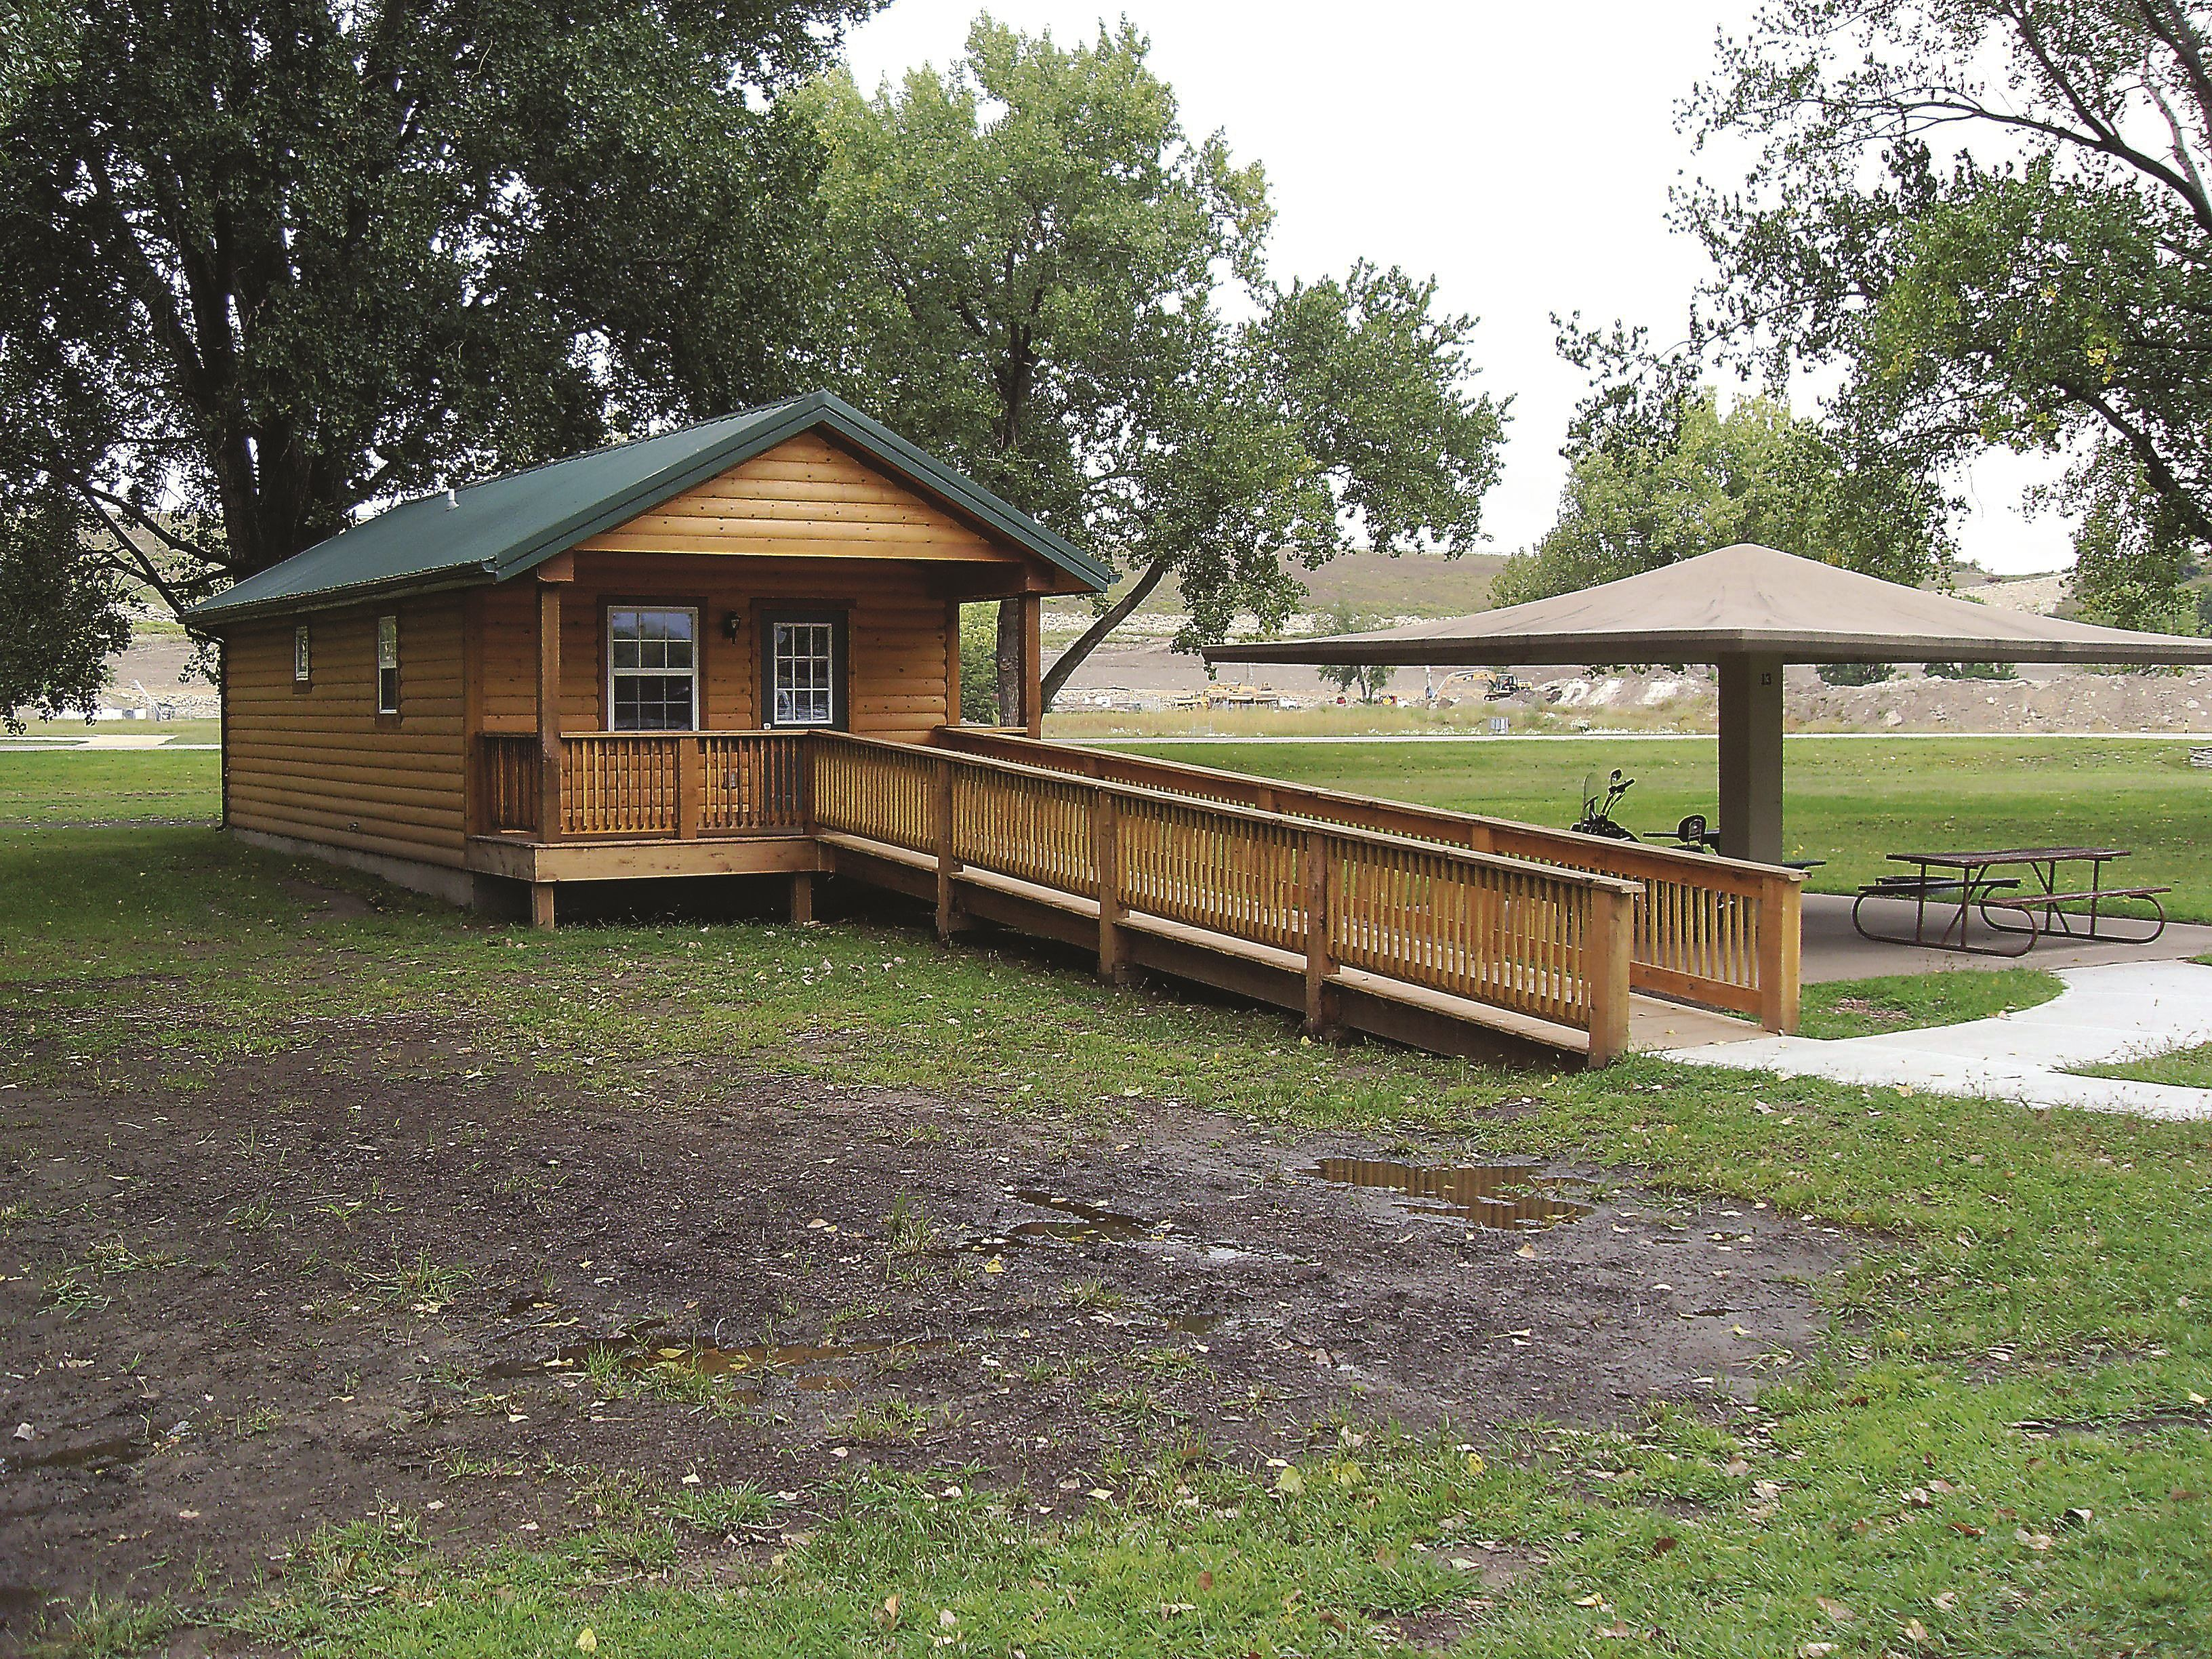 the kansas village family cabin dh of best rentals fun in resorts kid friendly photo hotels city cabins mo worlds